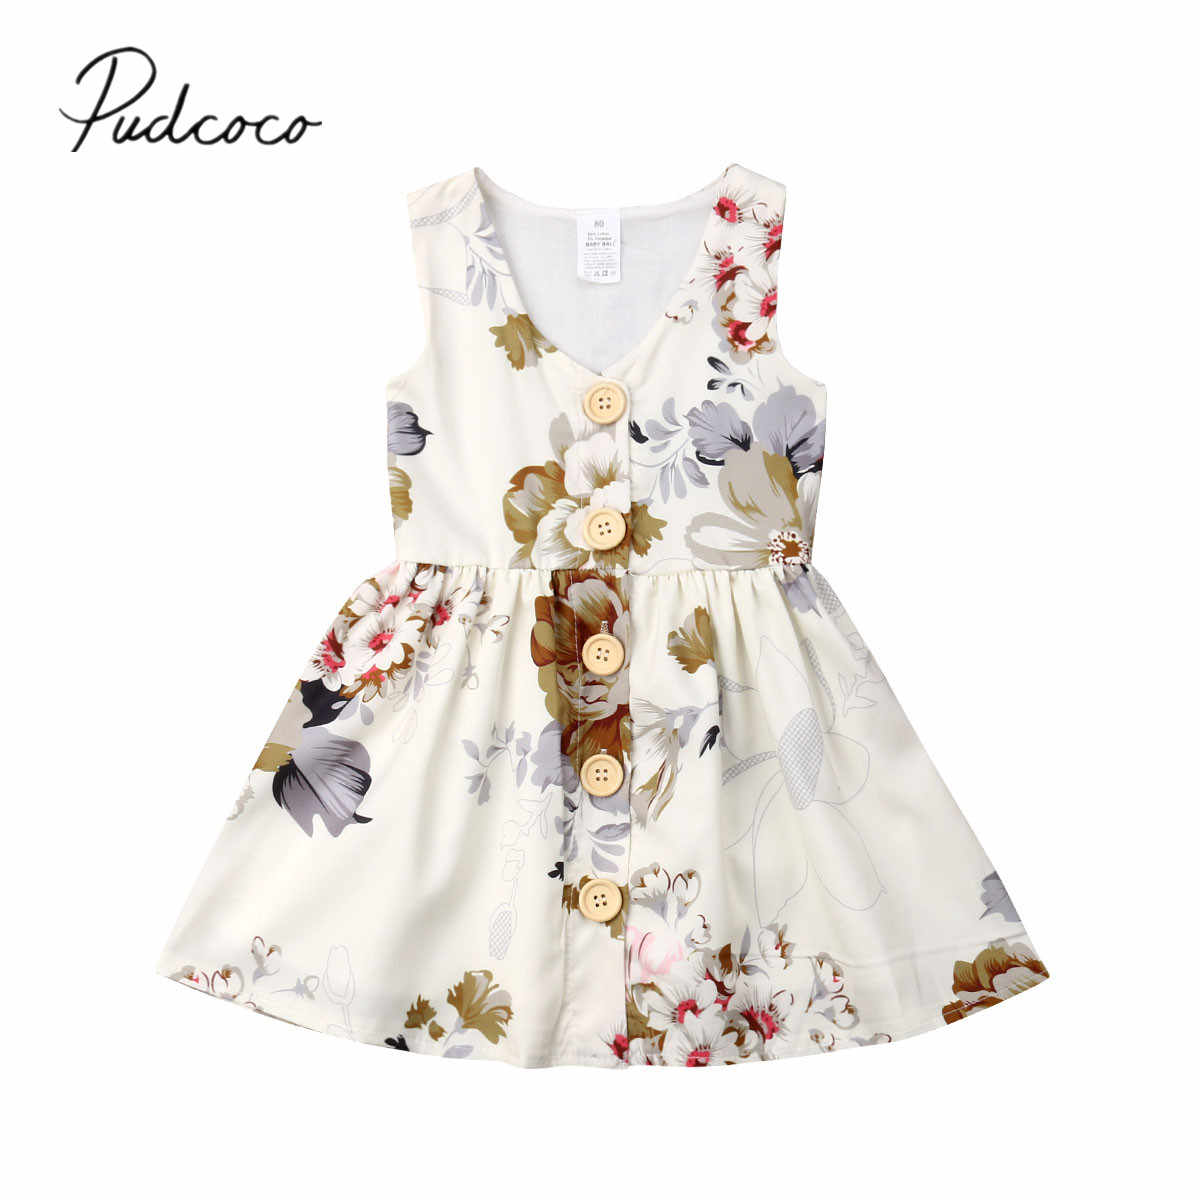 2019 Brand New Infant Kids Baby Girls Dress Sleeveless Button V-neck Floral Boho Sundress Princess Summer Party Dresses 6M-5Y